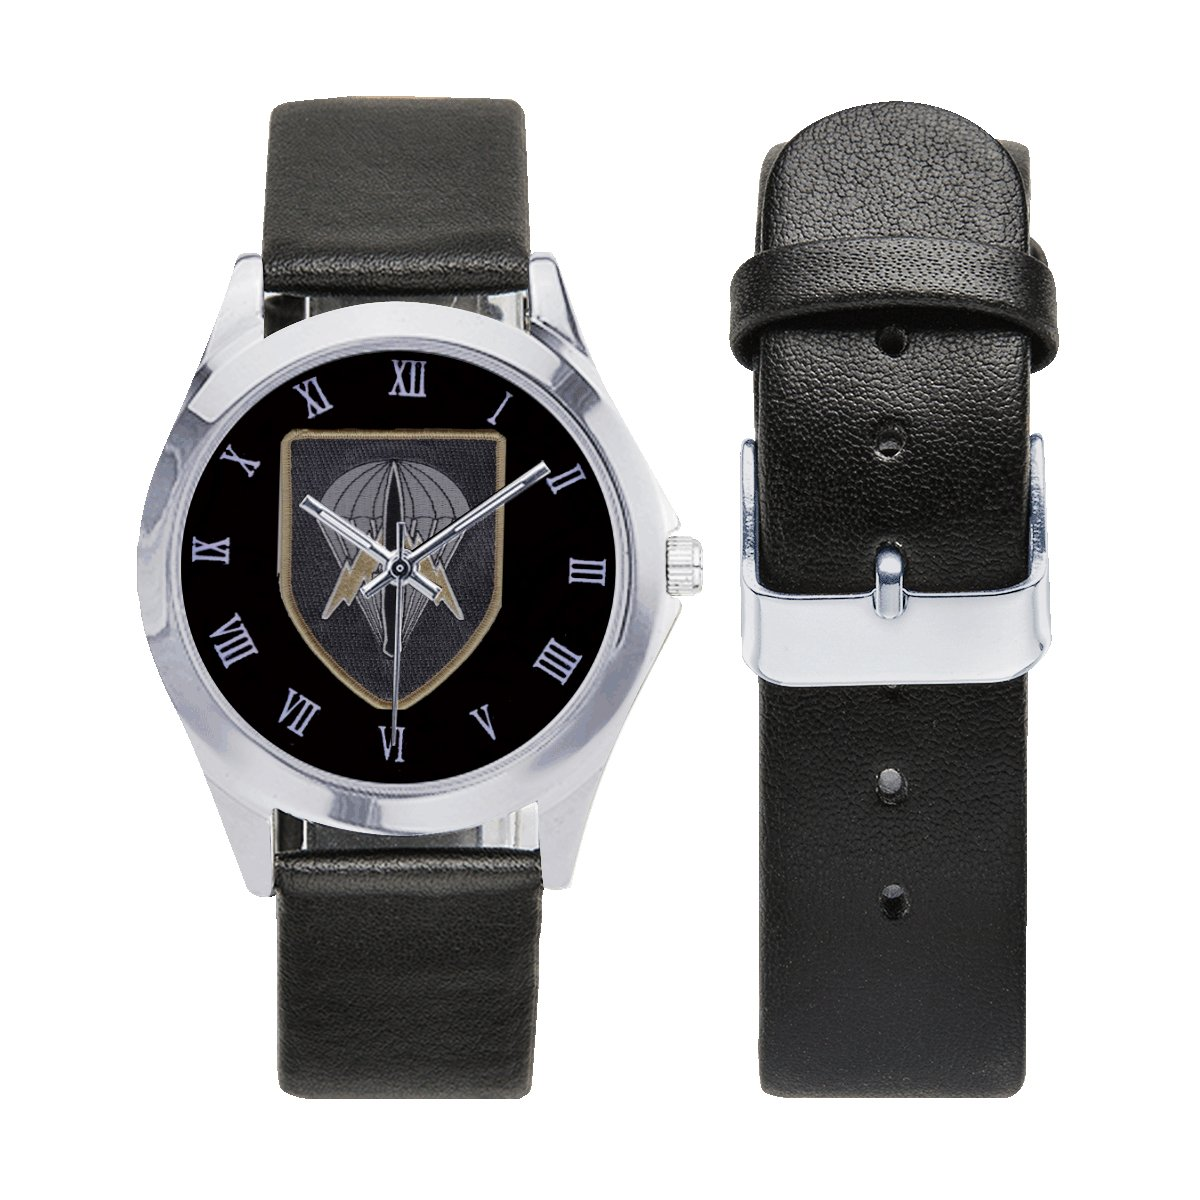 Austria Jagdkommando army special forces Logo Leather Strap Watch a perfect accessory